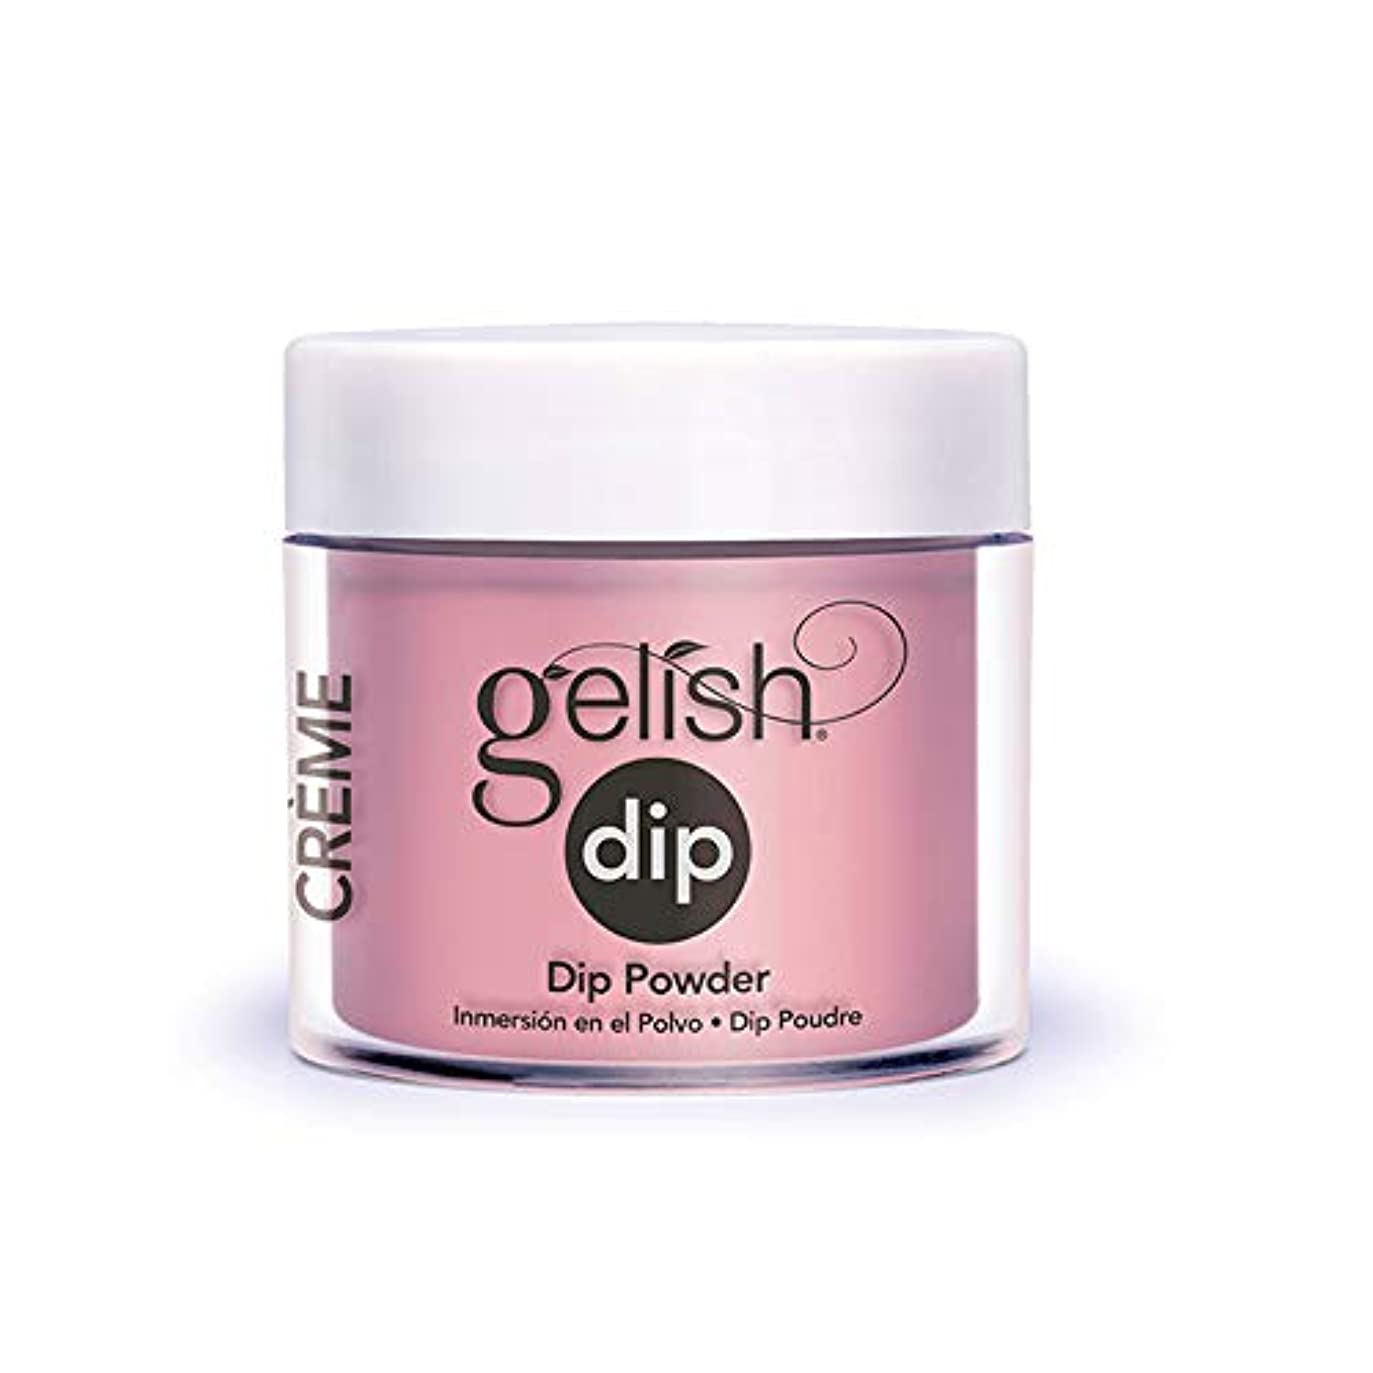 Harmony Gelish - Acrylic Dip Powder - She's My Beauty - 23g / 0.8oz